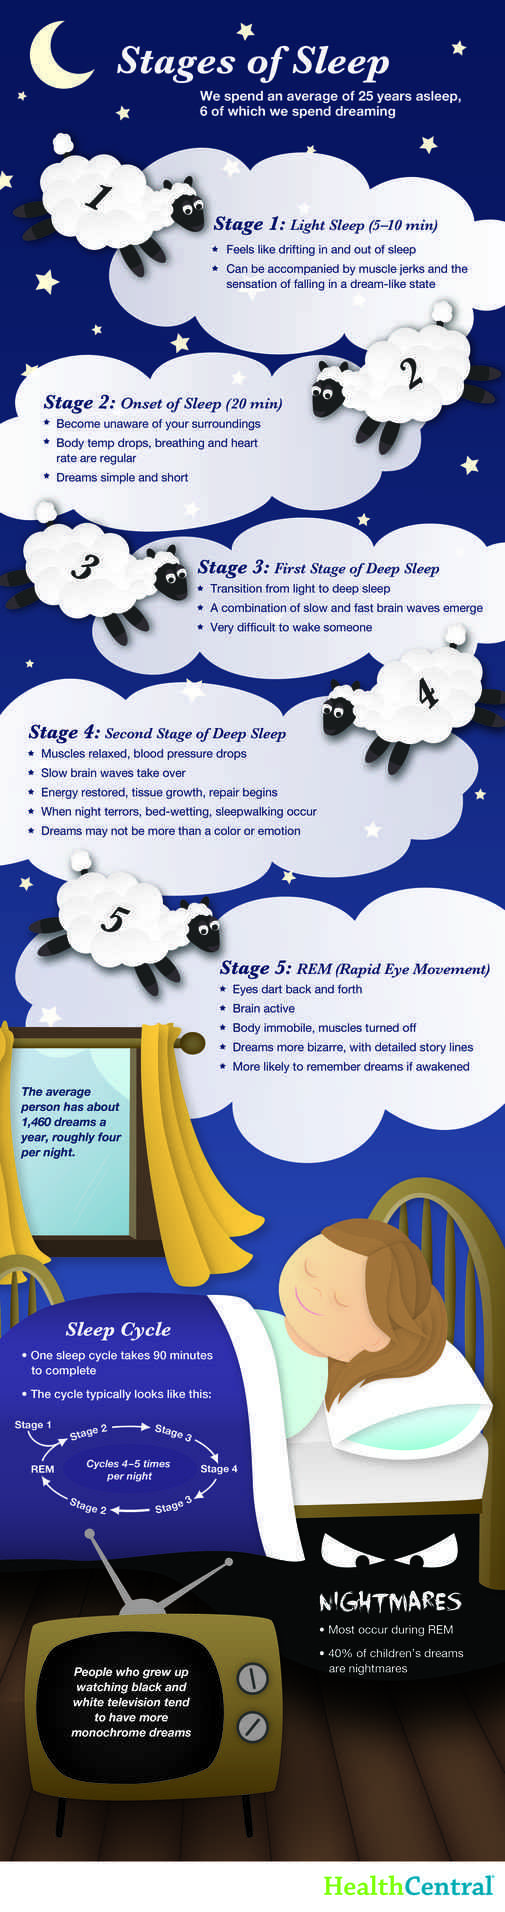 Know your stages of sleep, and plan your sleep schedule around them.